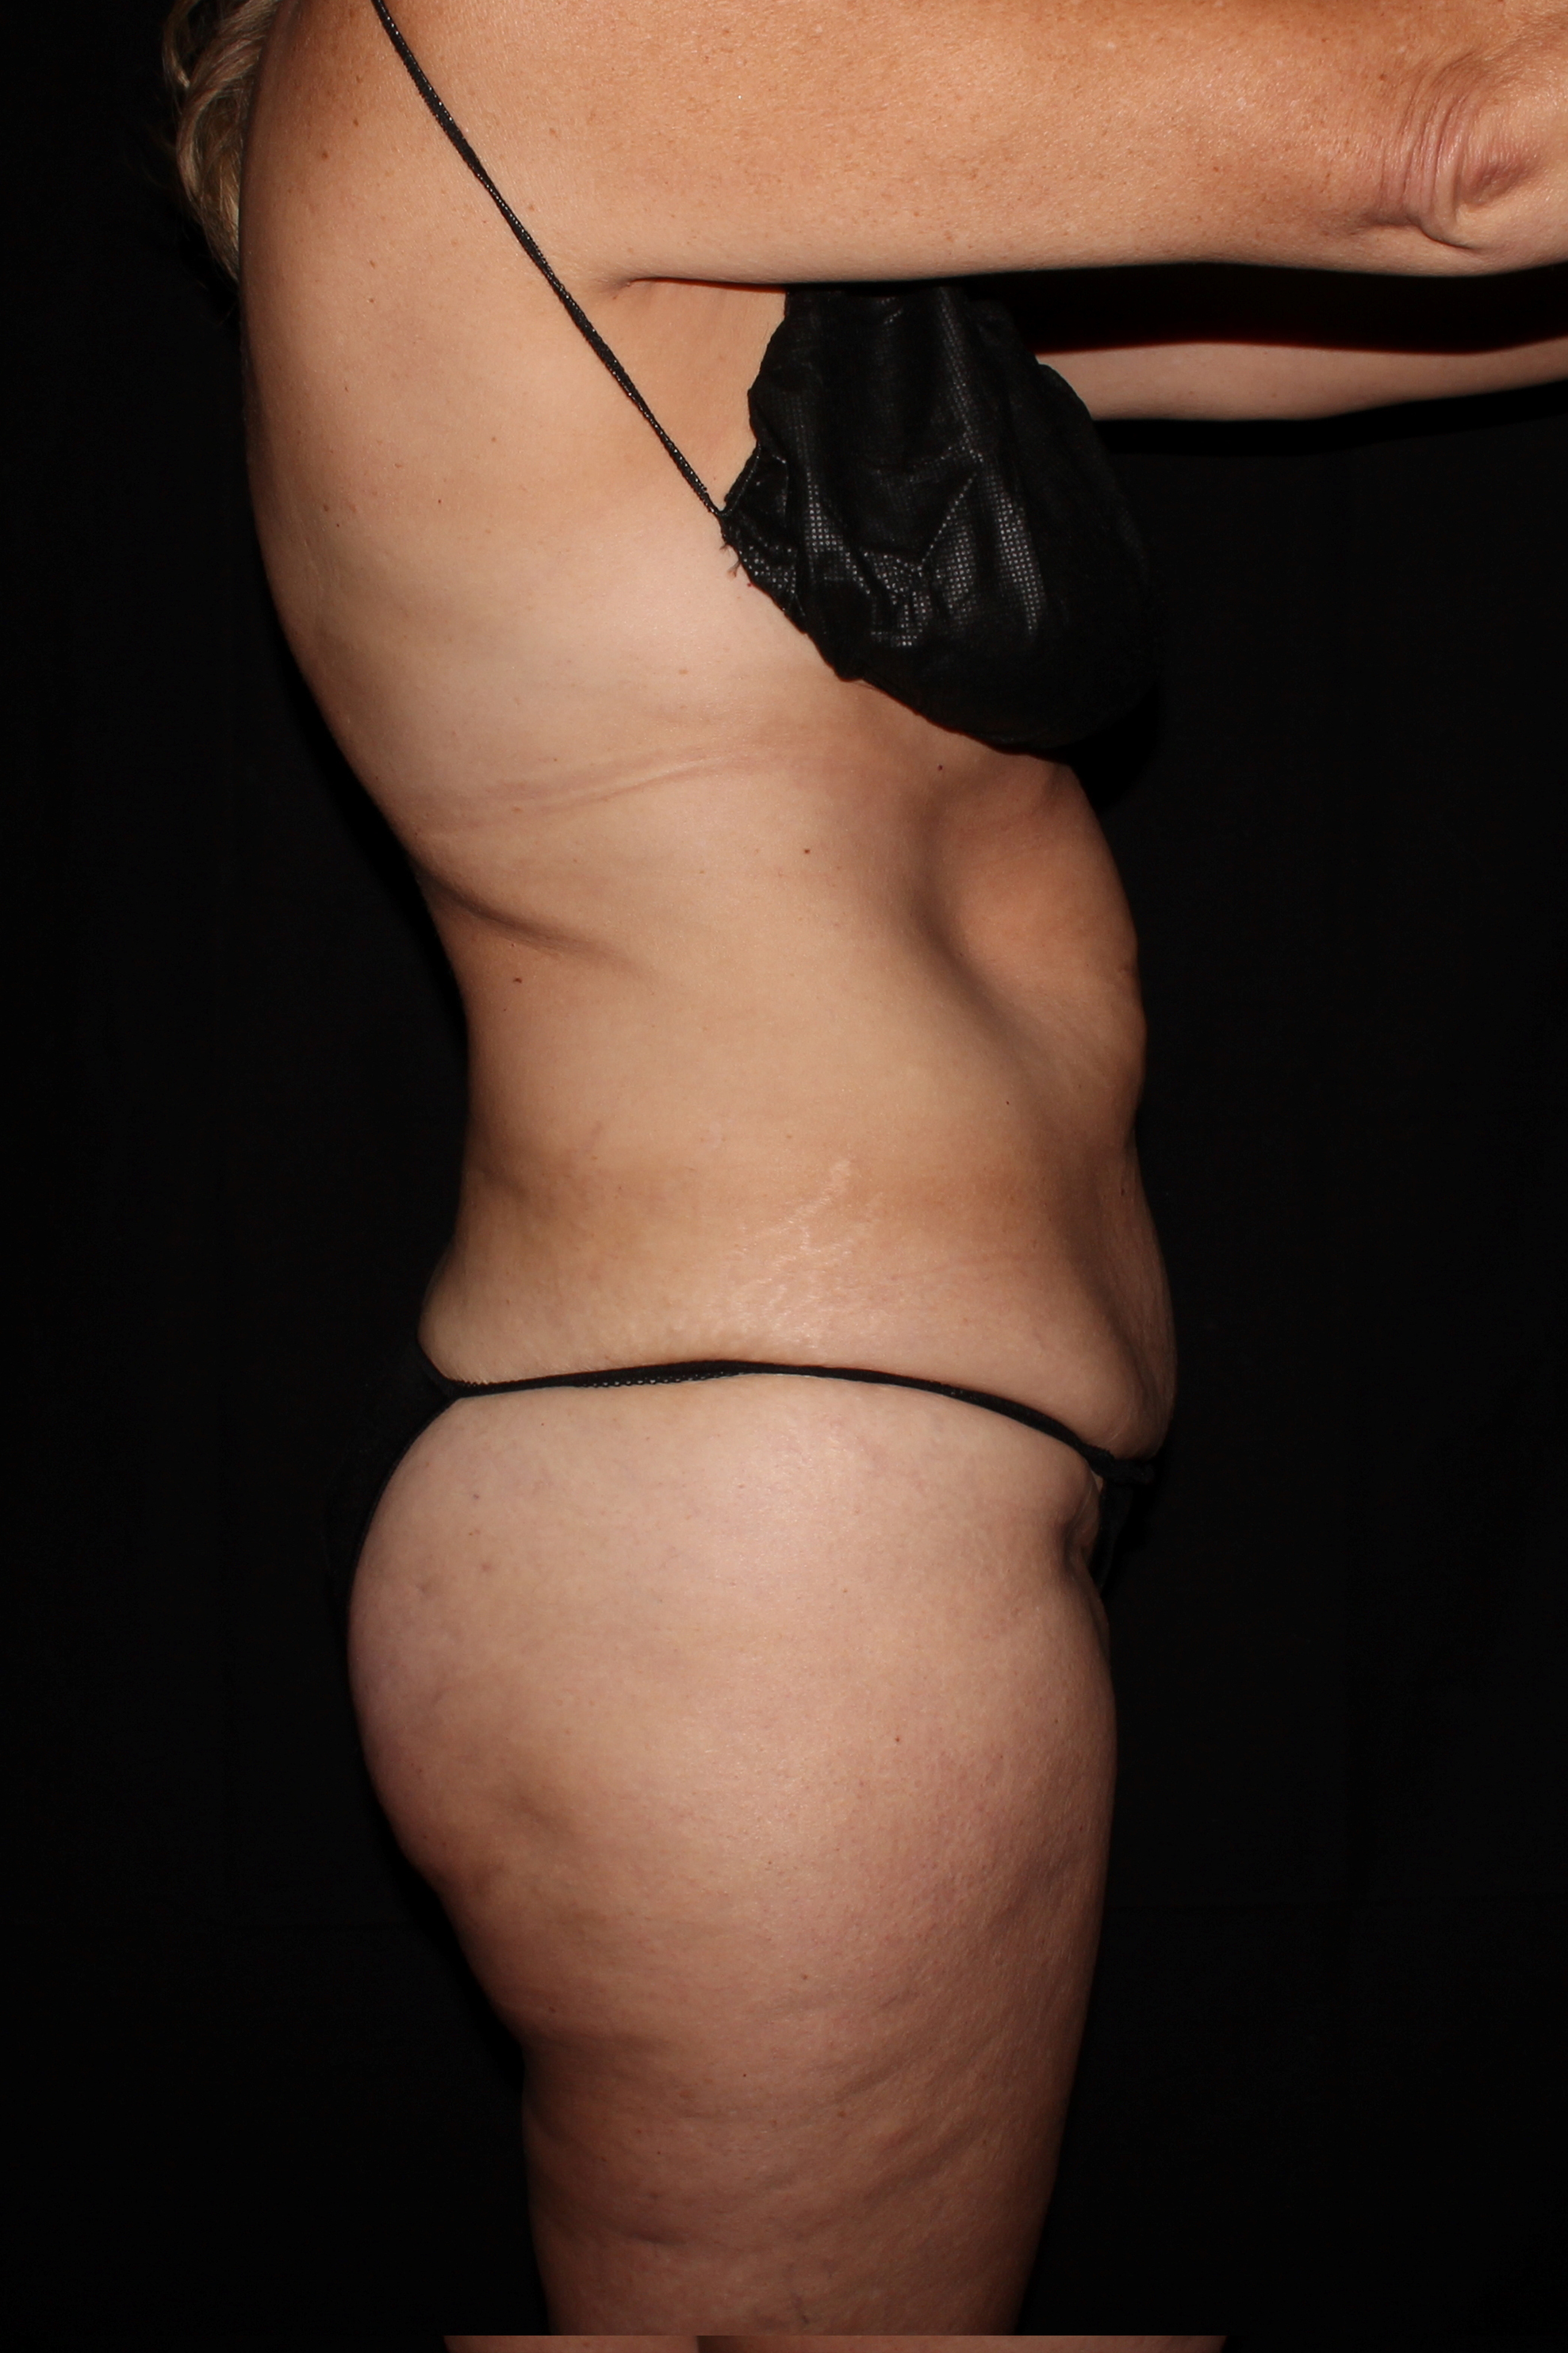 Before Tummy Tuck - Side